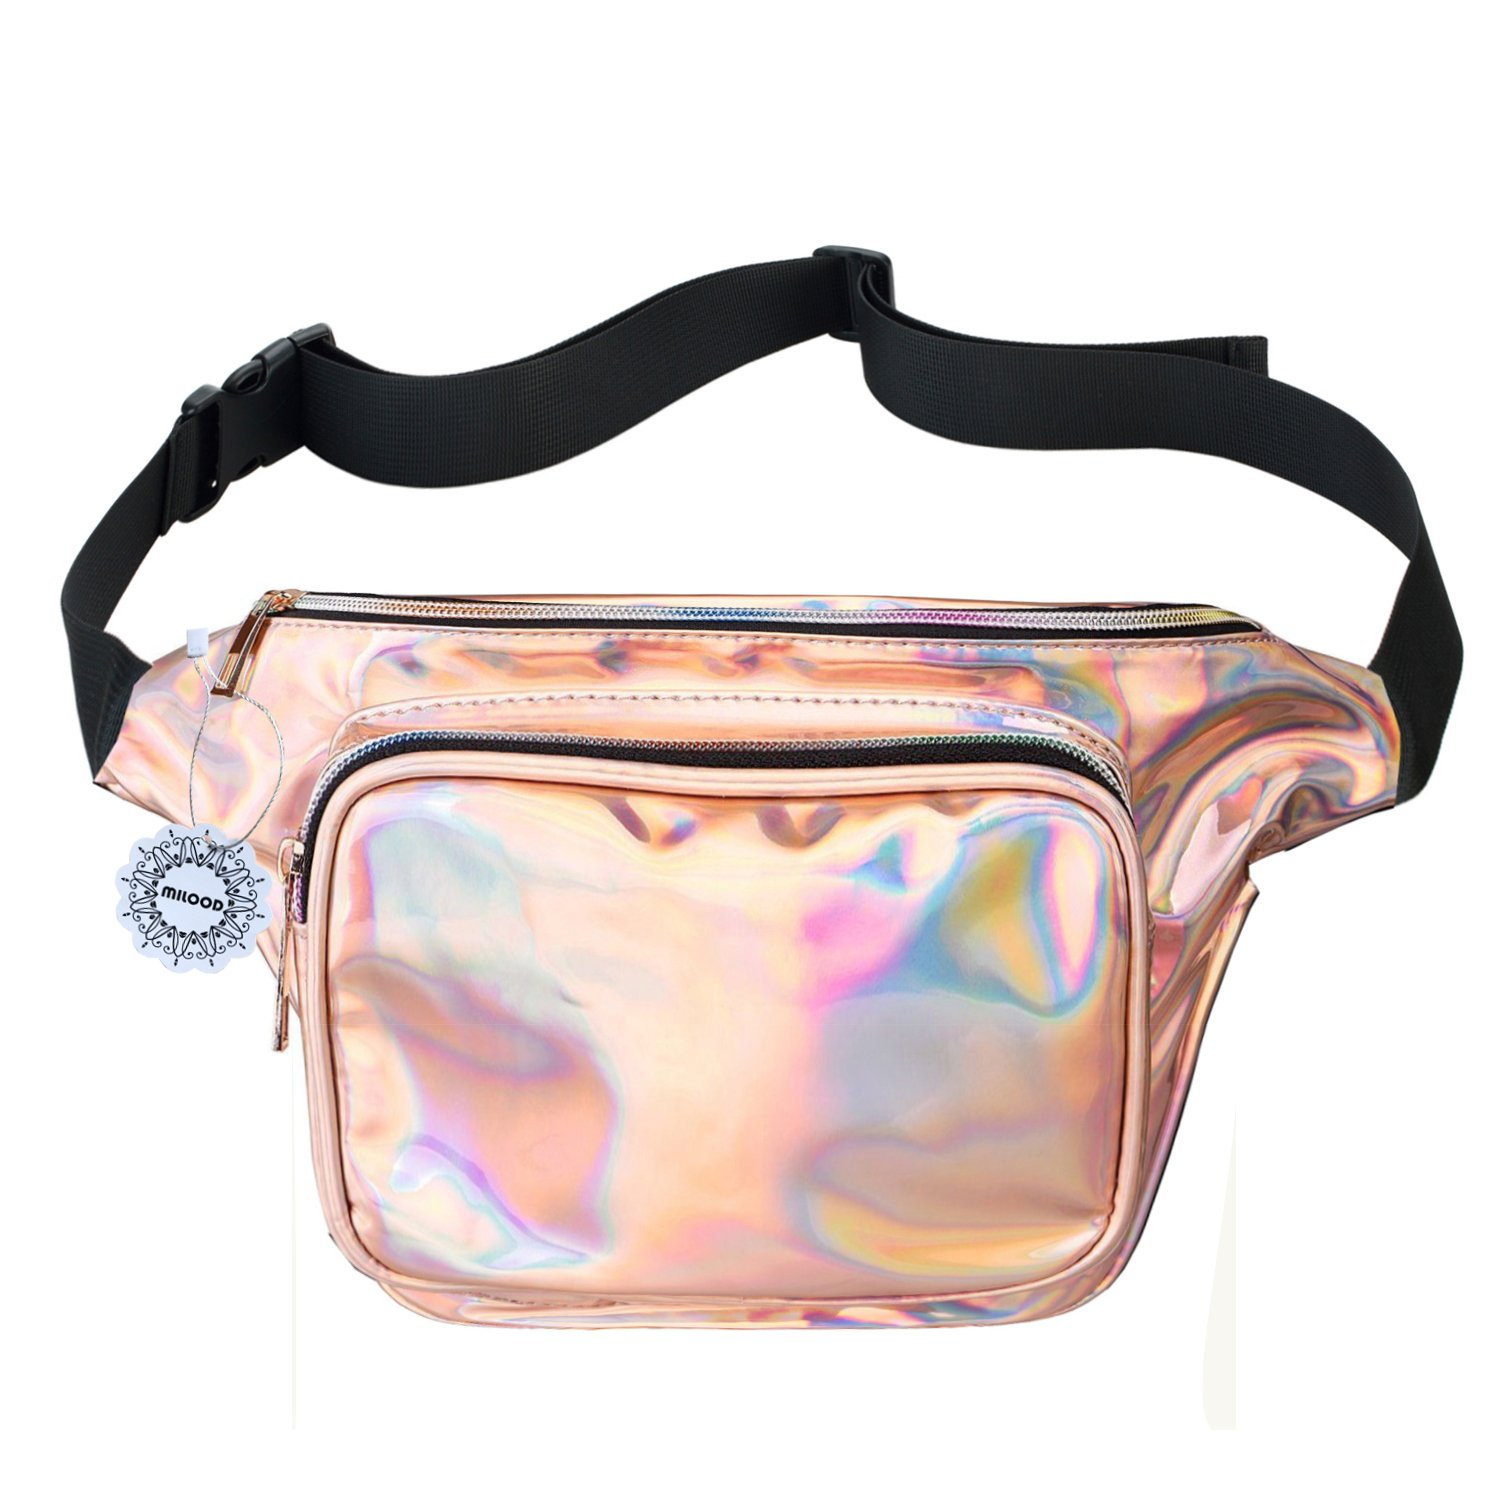 WODODO Fanny Pack for Women Party Waist Festival Money Belt Leather Pouch Concert HolographicWallet Bum Bag Tote